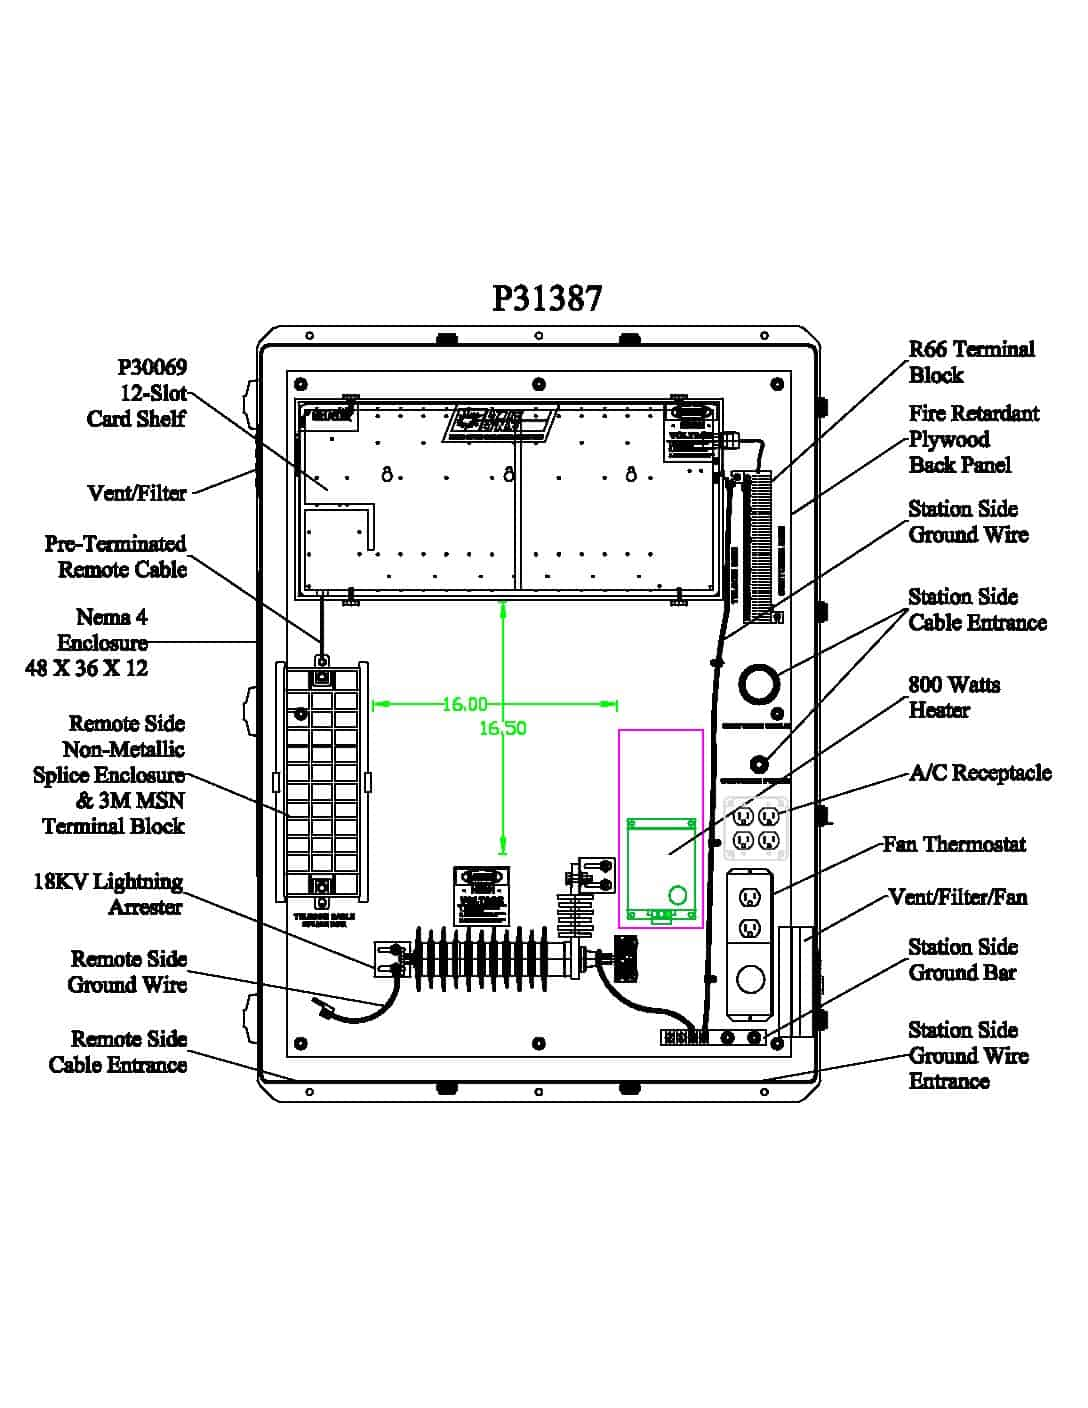 P31387 Turnkey Protection Packages – 12 slot PDF thumbnail